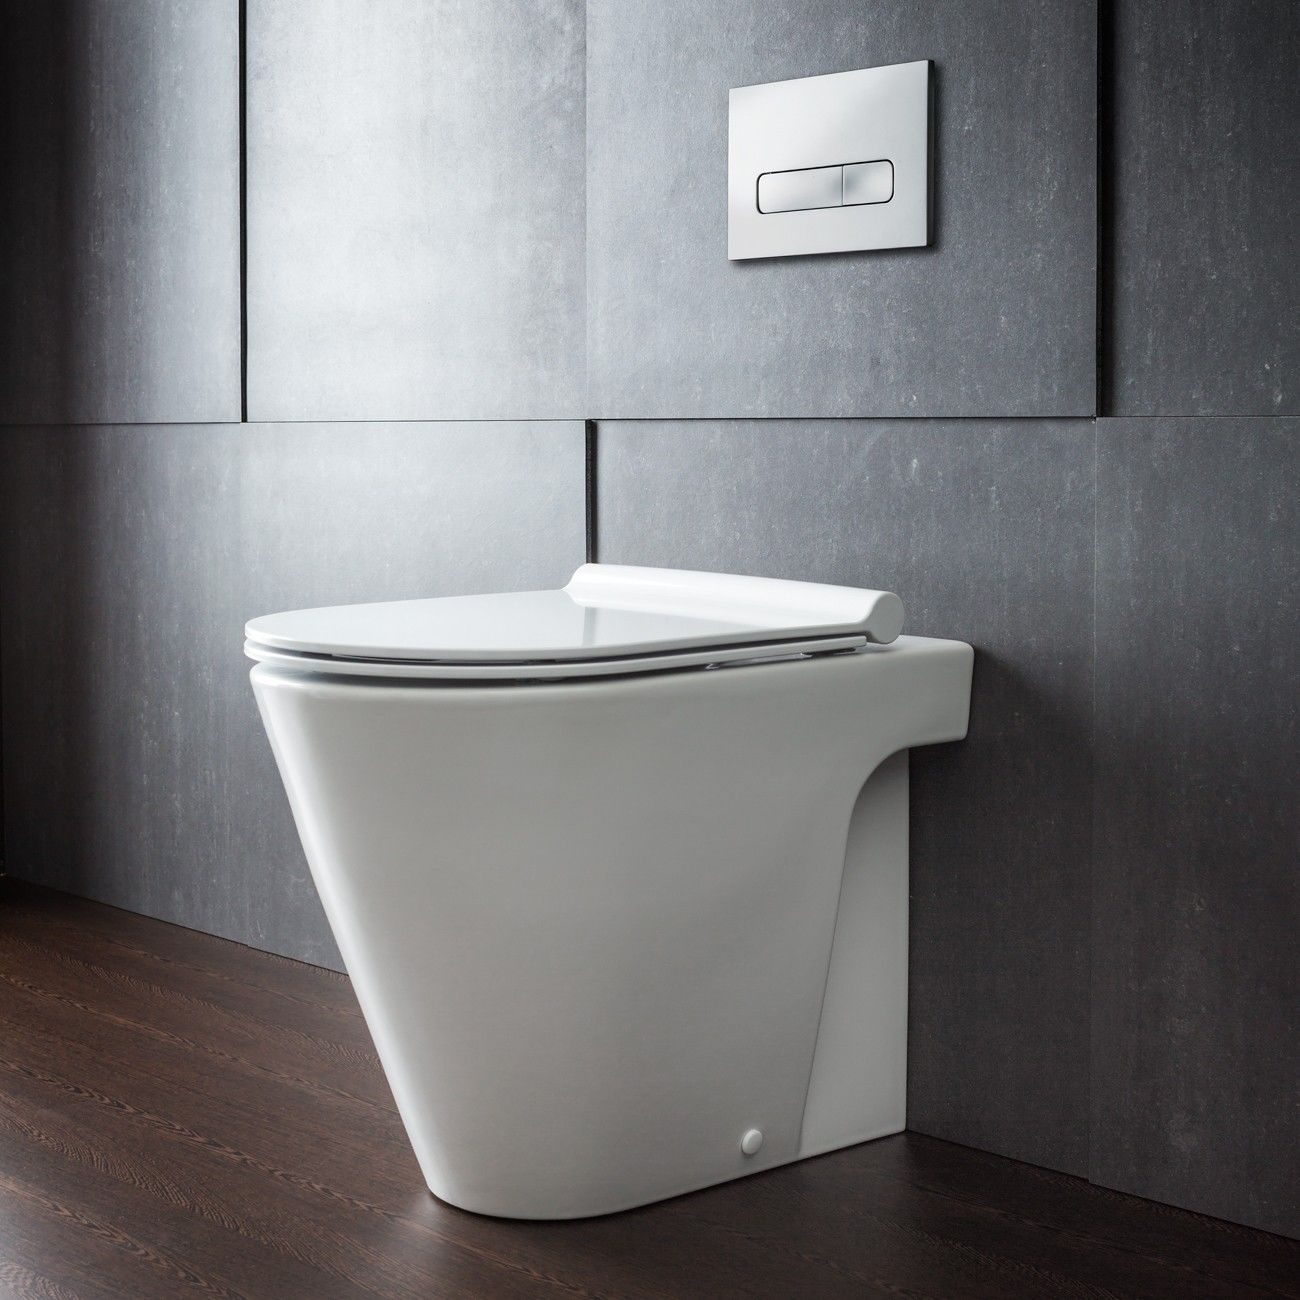 Fine Zero 55 Floor Mount Toilet Pan With Slim Seat By Rogerseller Beatyapartments Chair Design Images Beatyapartmentscom